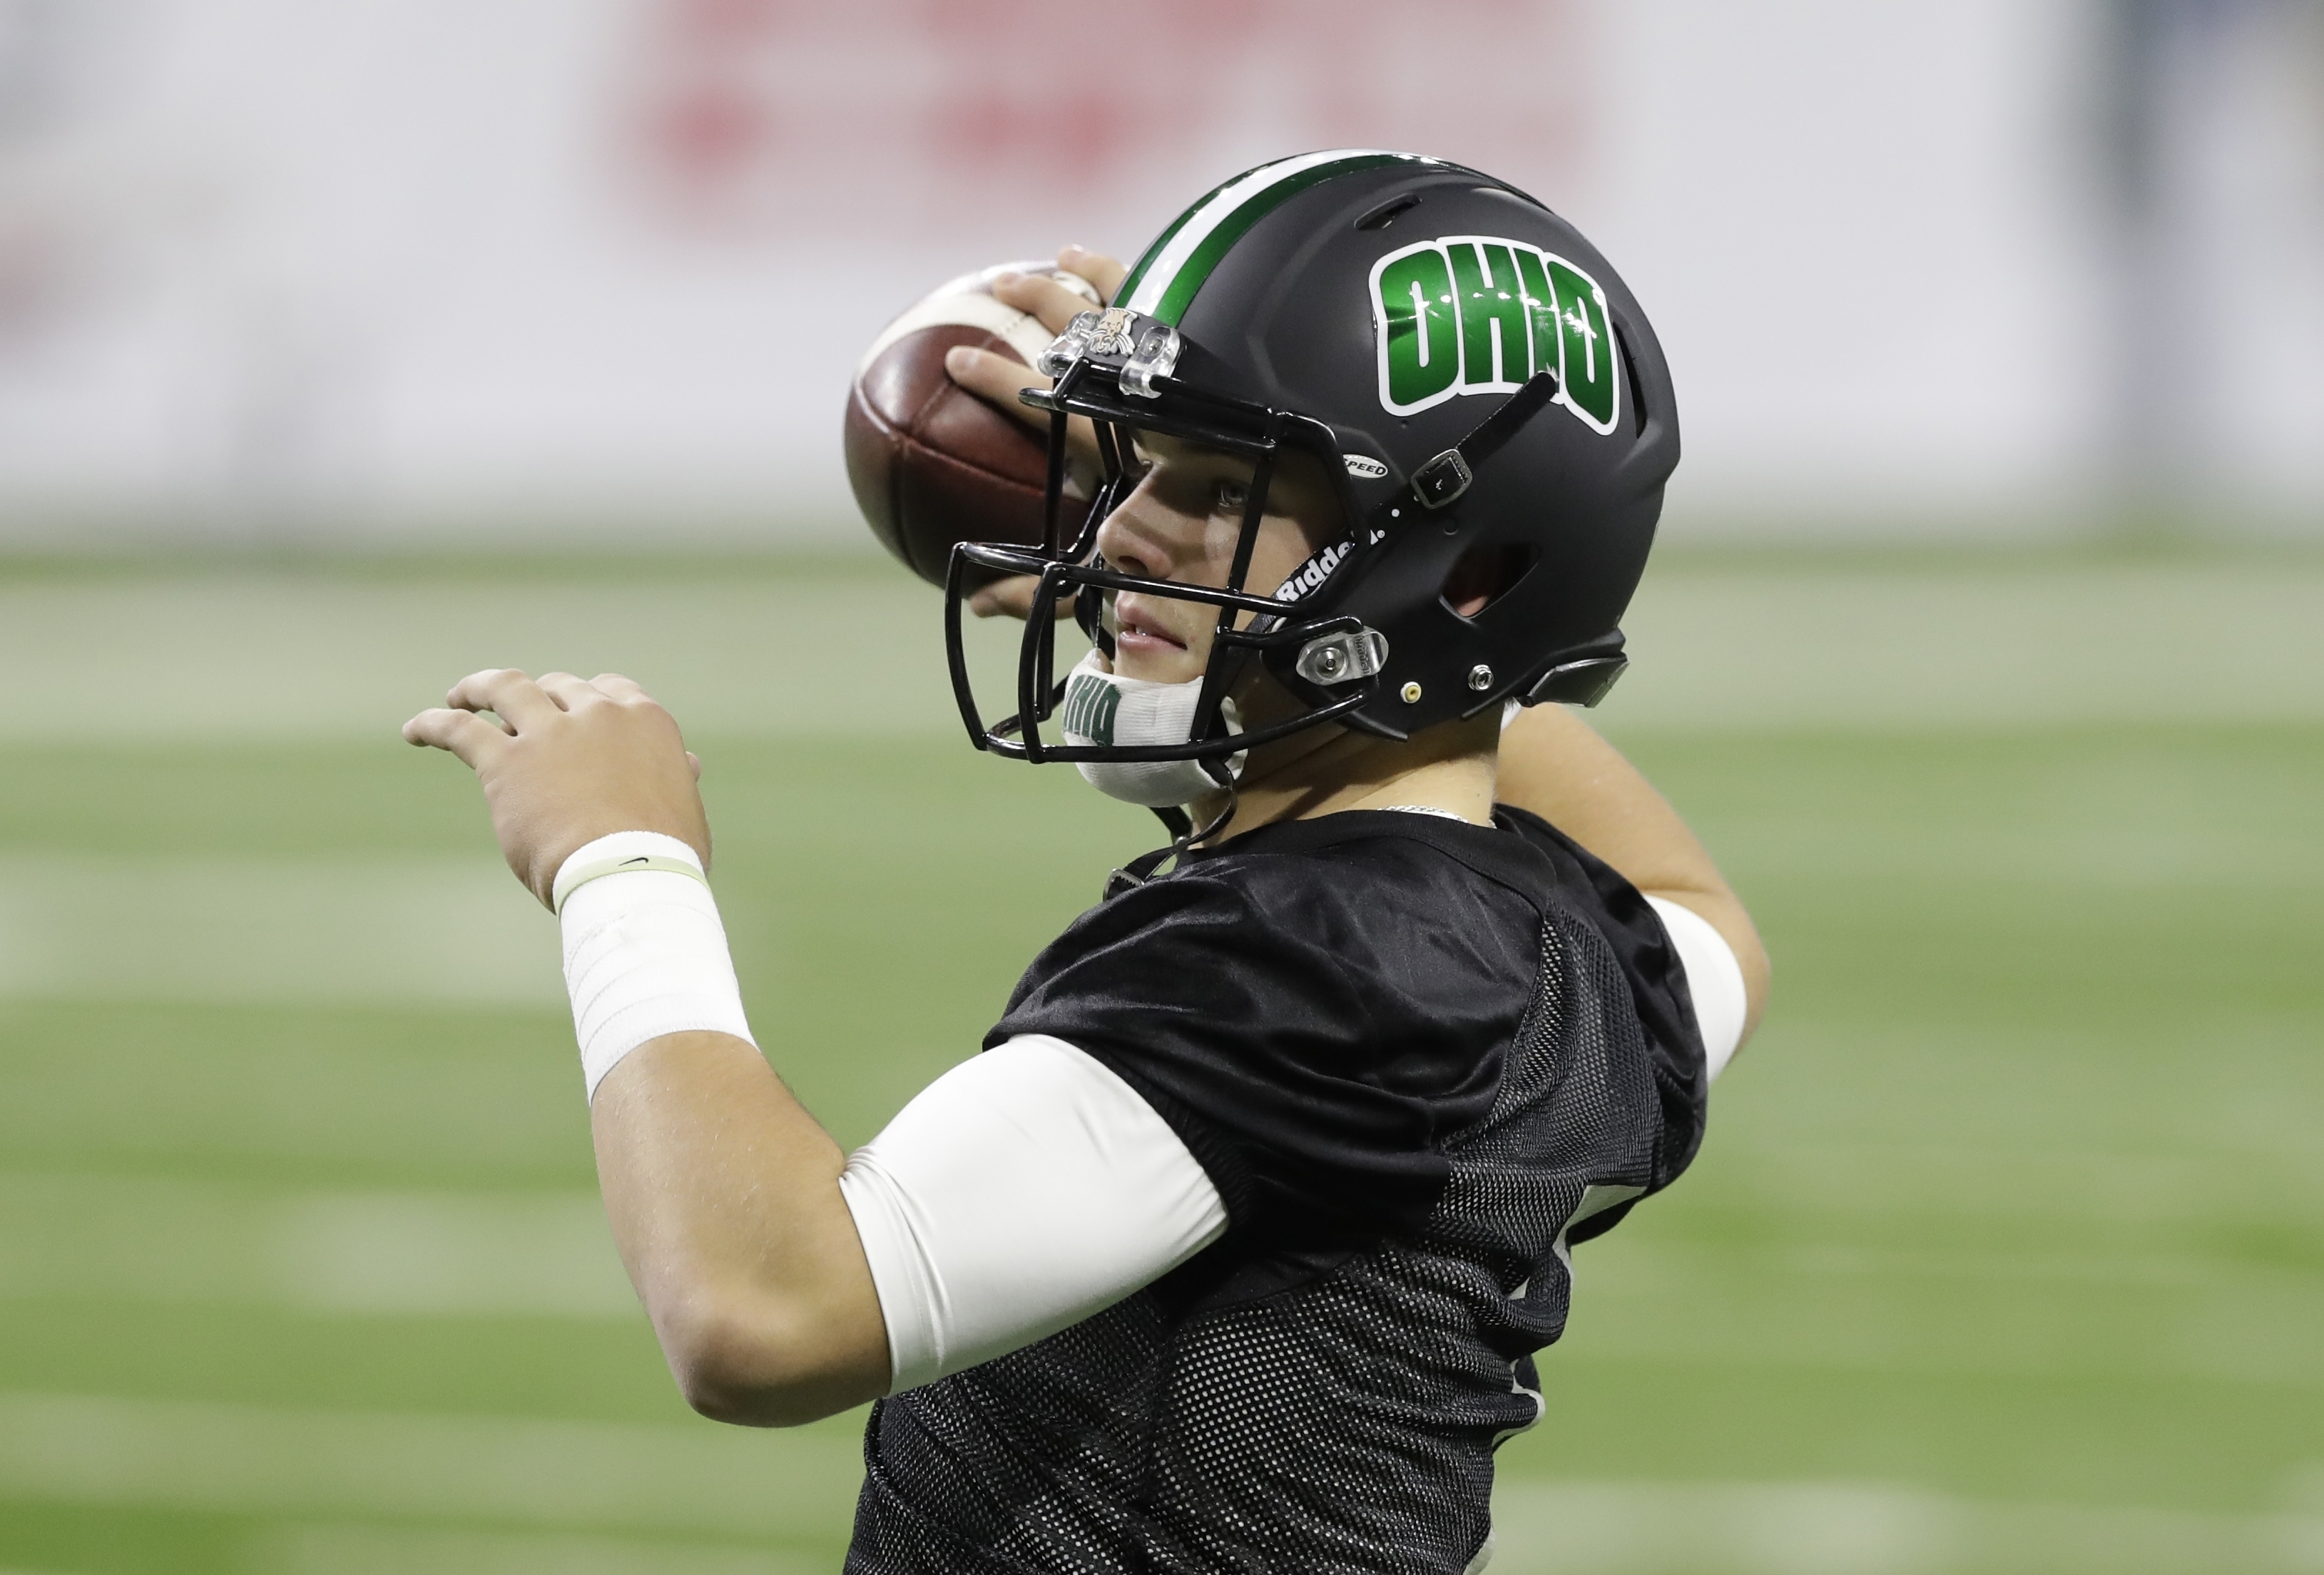 Ohio quarterback Quinton Maxwell throws during an NCAA college football walk-through in Detroit, Thursday, Dec. 1, 2016. Ohio will play Western Michigan in the Mid-American Conference Championship at Ford Field on Friday. (AP Photo/Carlos Osorio)